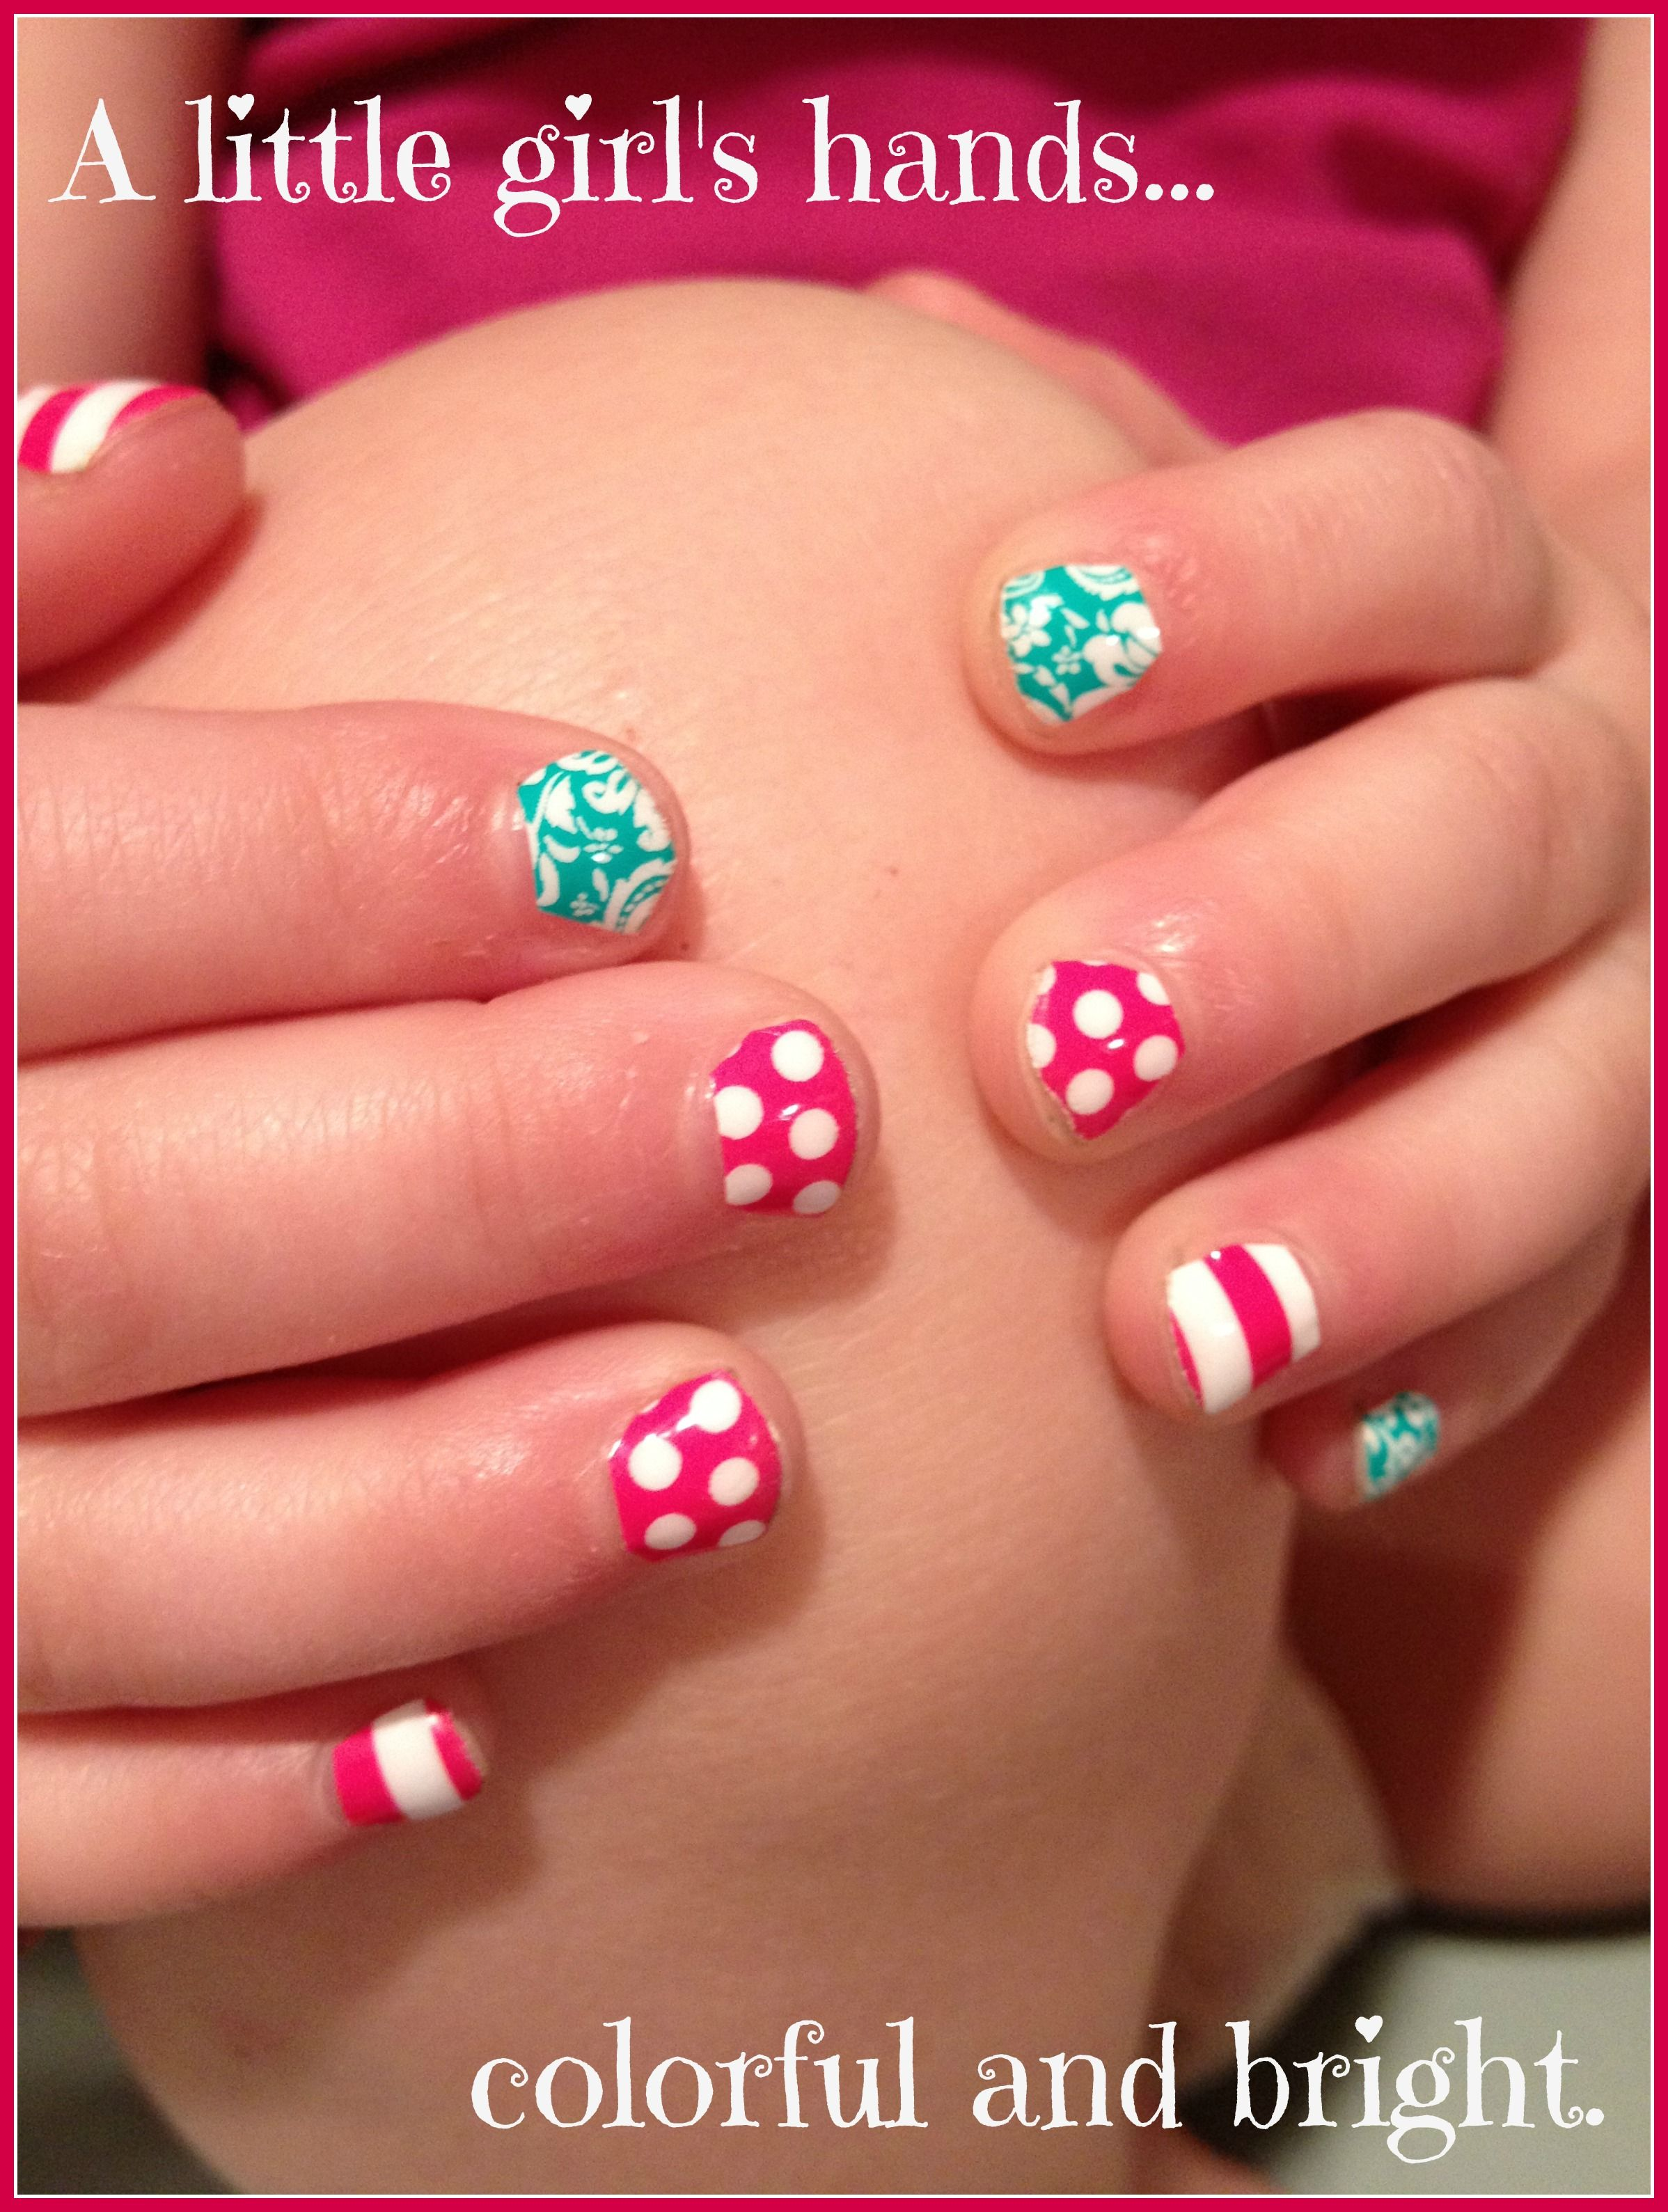 Pin by Diva My Nails on Little Girl Nails | Little girl ...